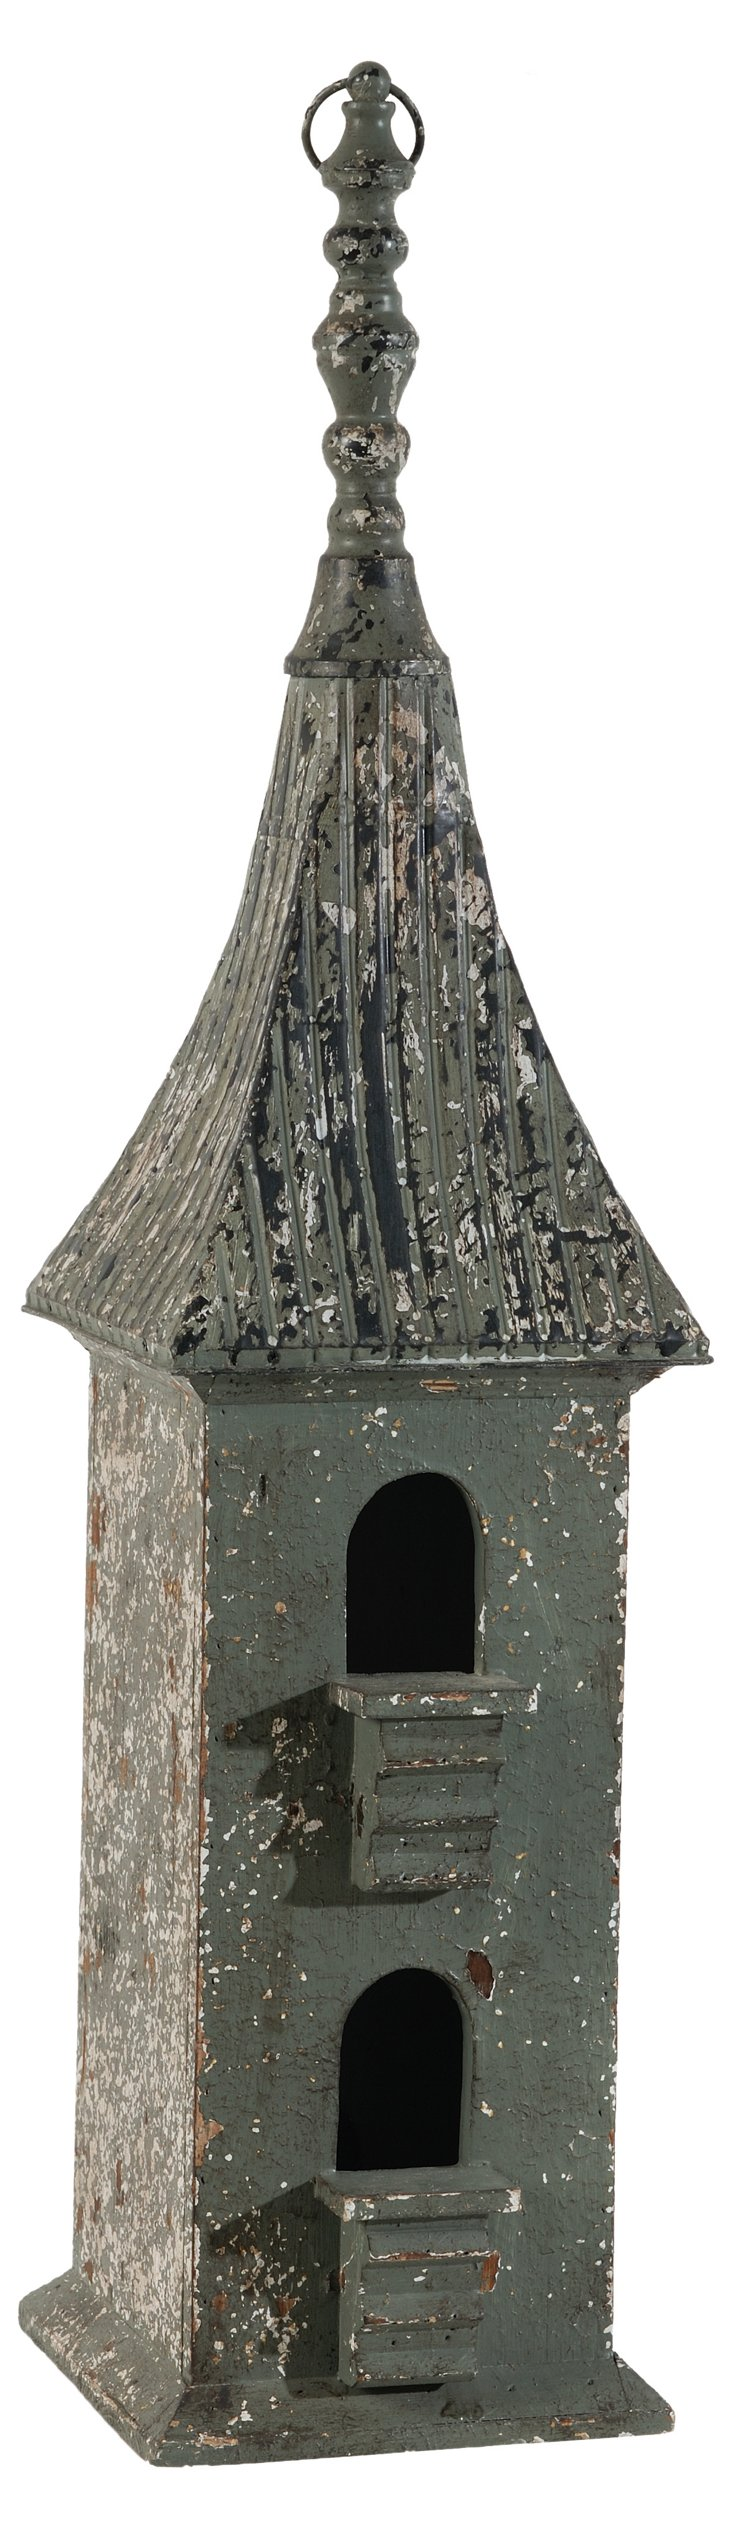 "36"" Weathered Birdhouse"